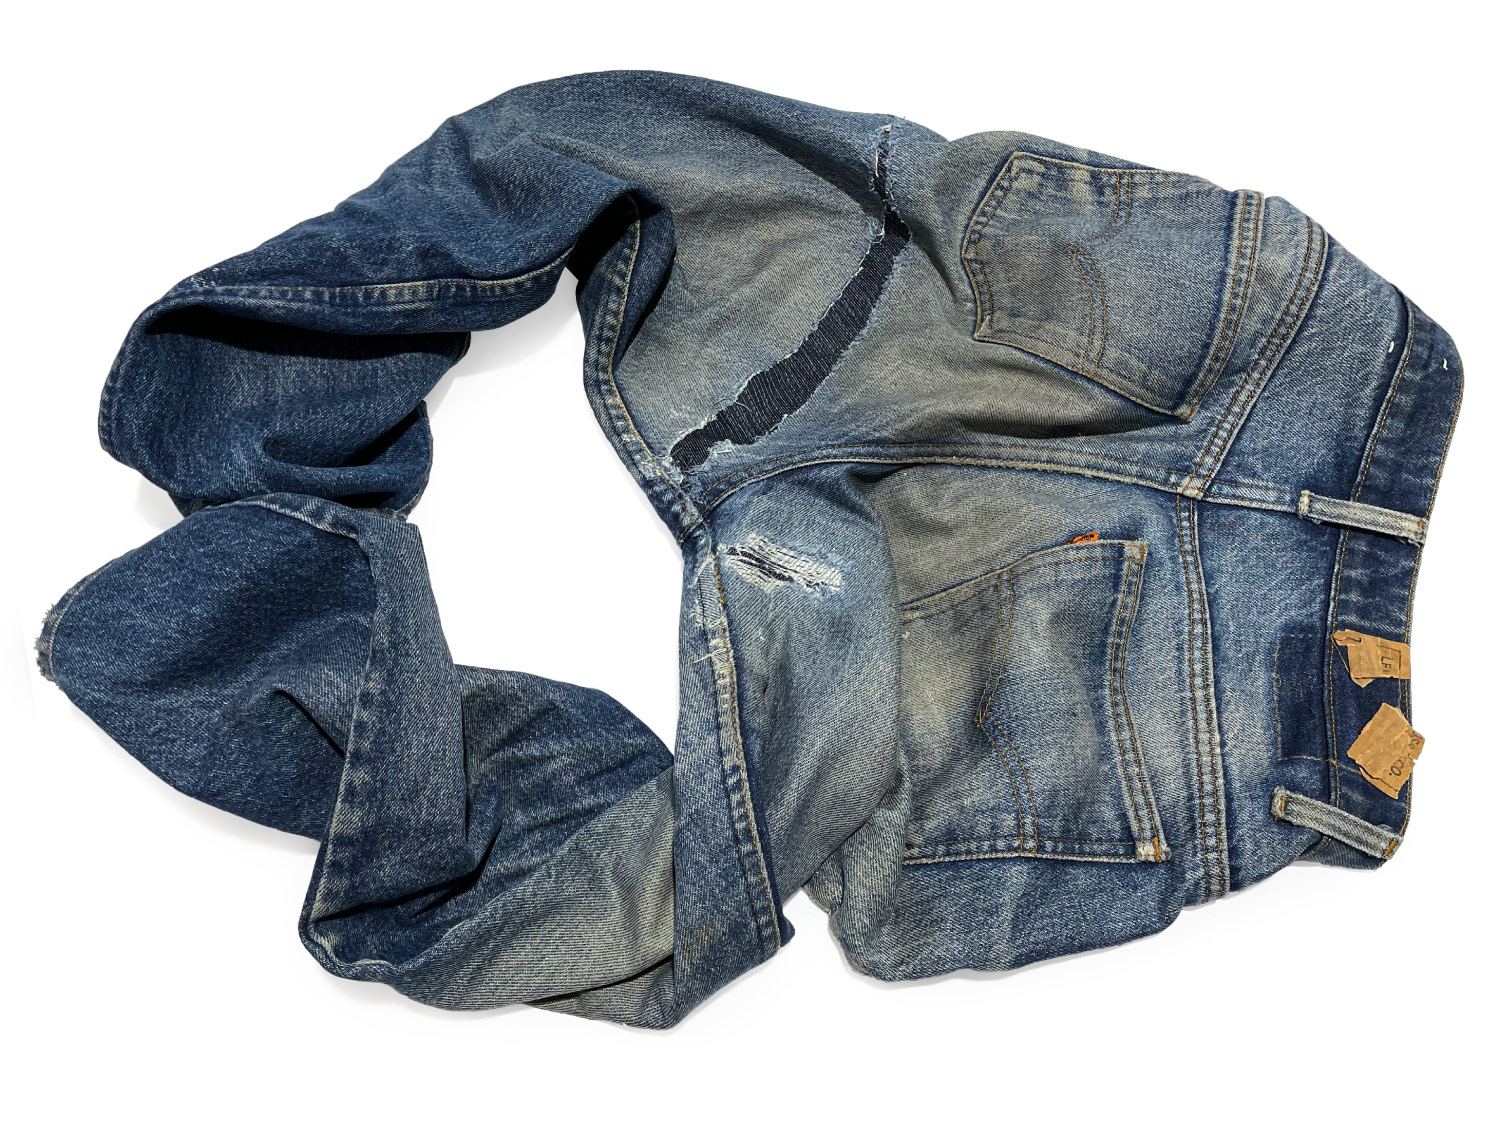 Old Levi's jeans with holes in the crotch repaired